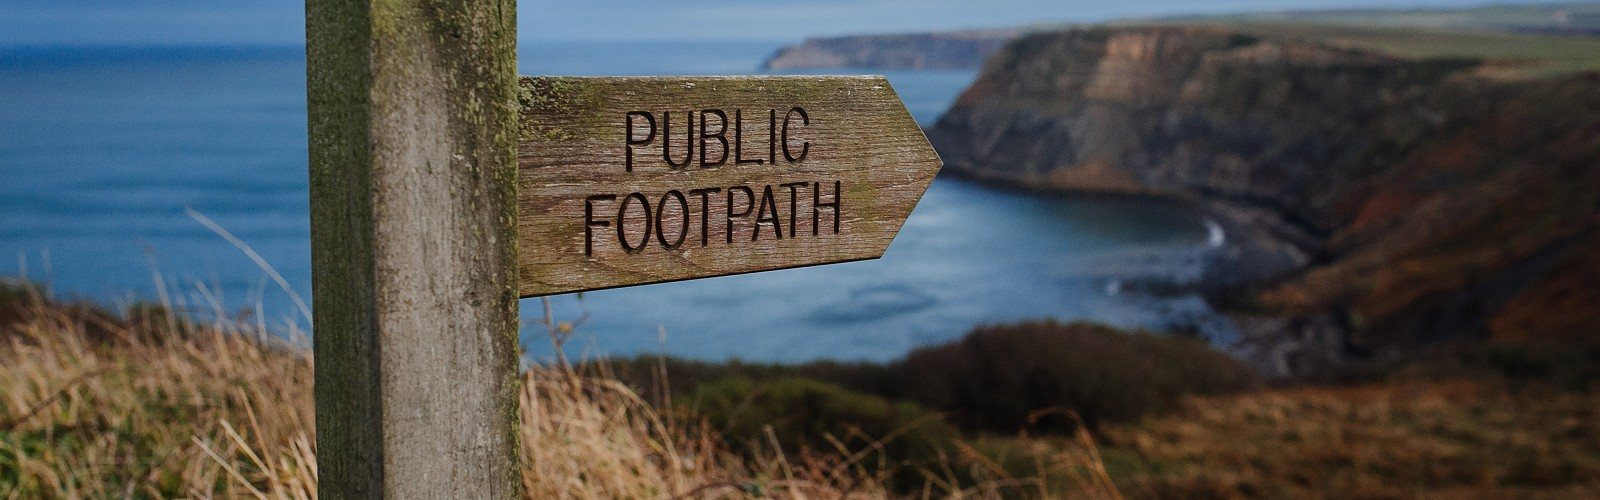 Public Footpath signpost on cliff overlooking a sea bay (image: Phil Hearing on unsplash)